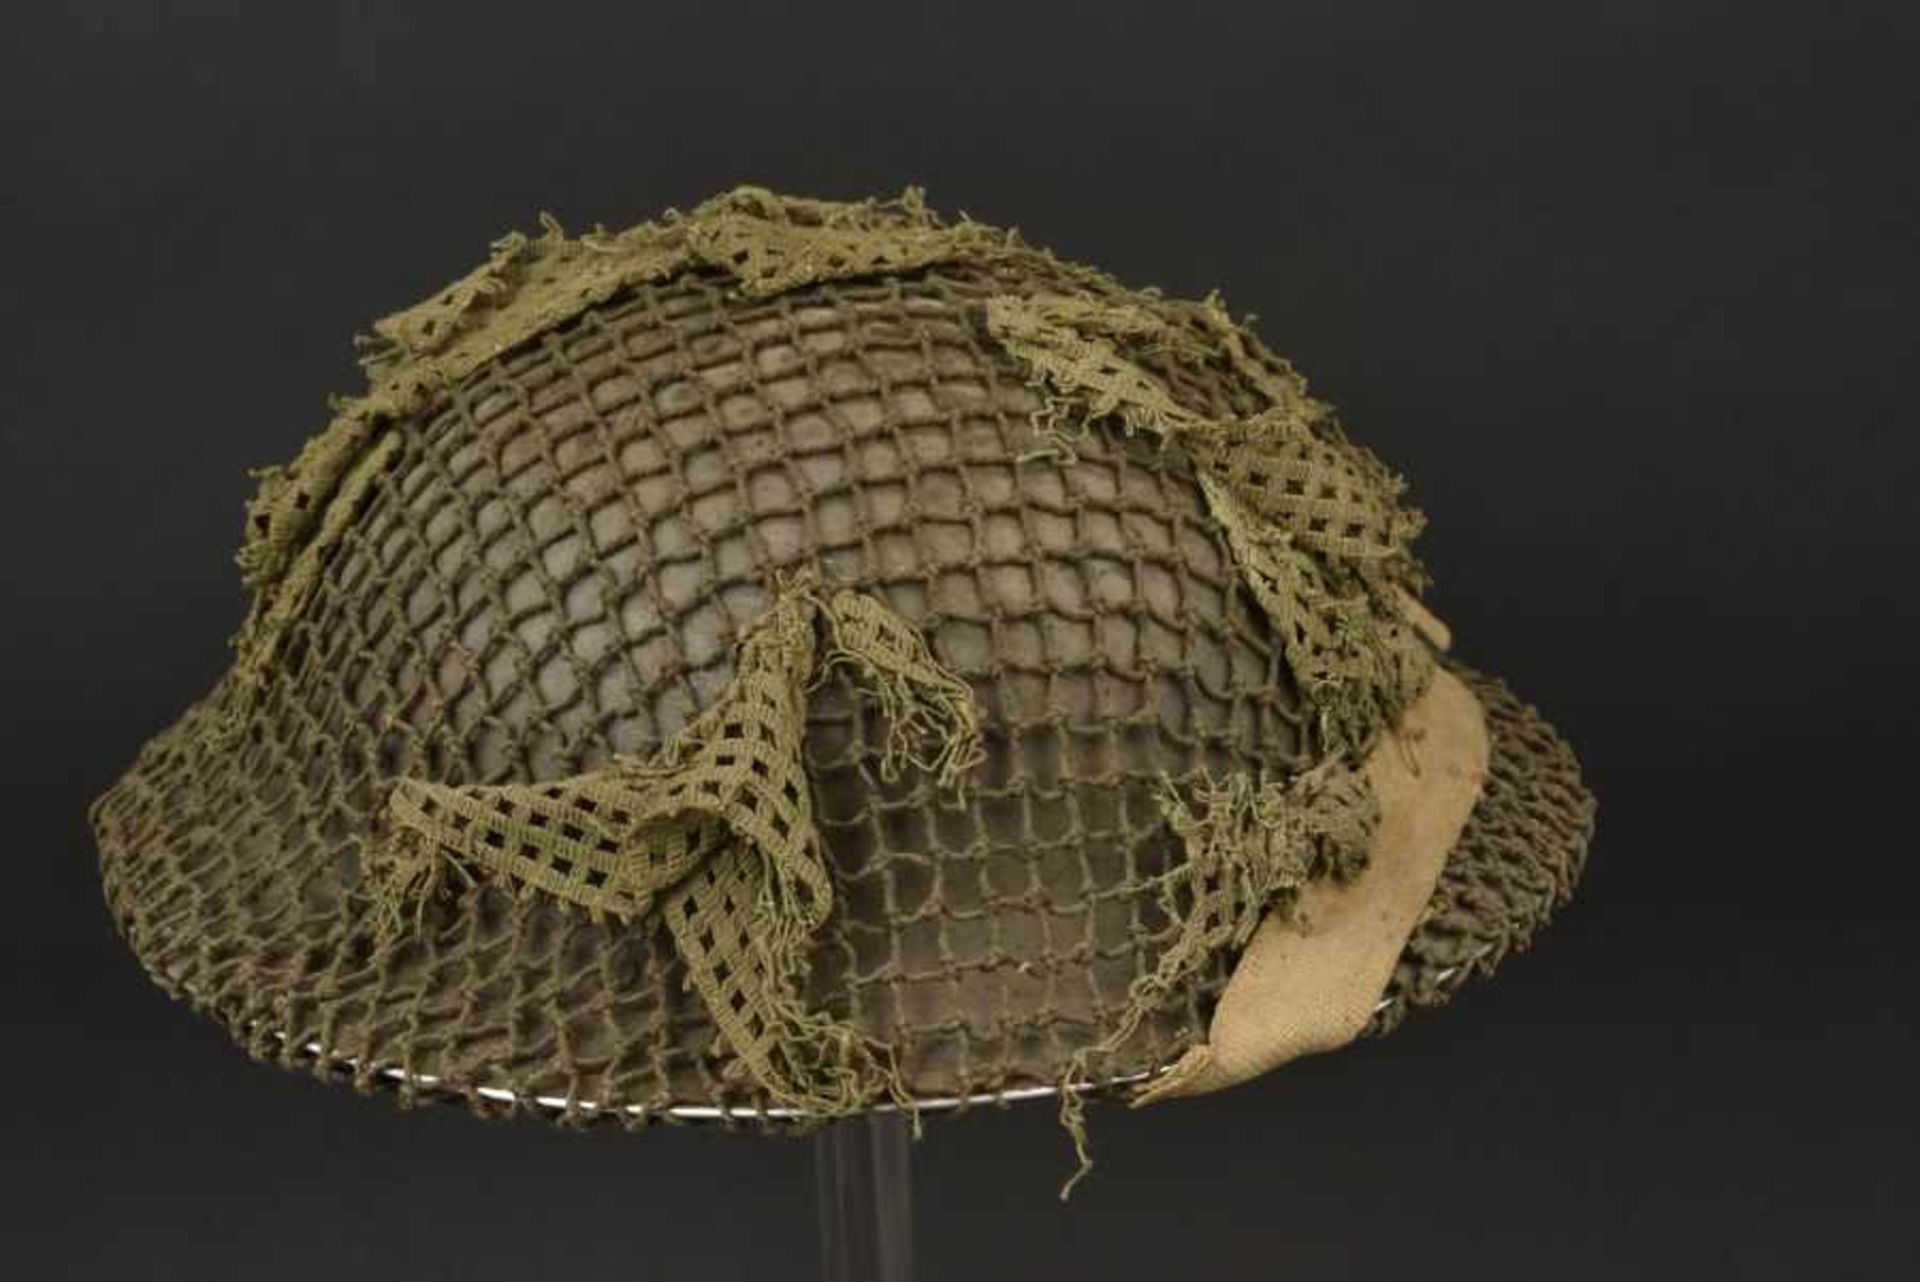 Casque canadien avec filet de camouflage monté d'origine Canadian helmet bearing its original - Bild 4 aus 4